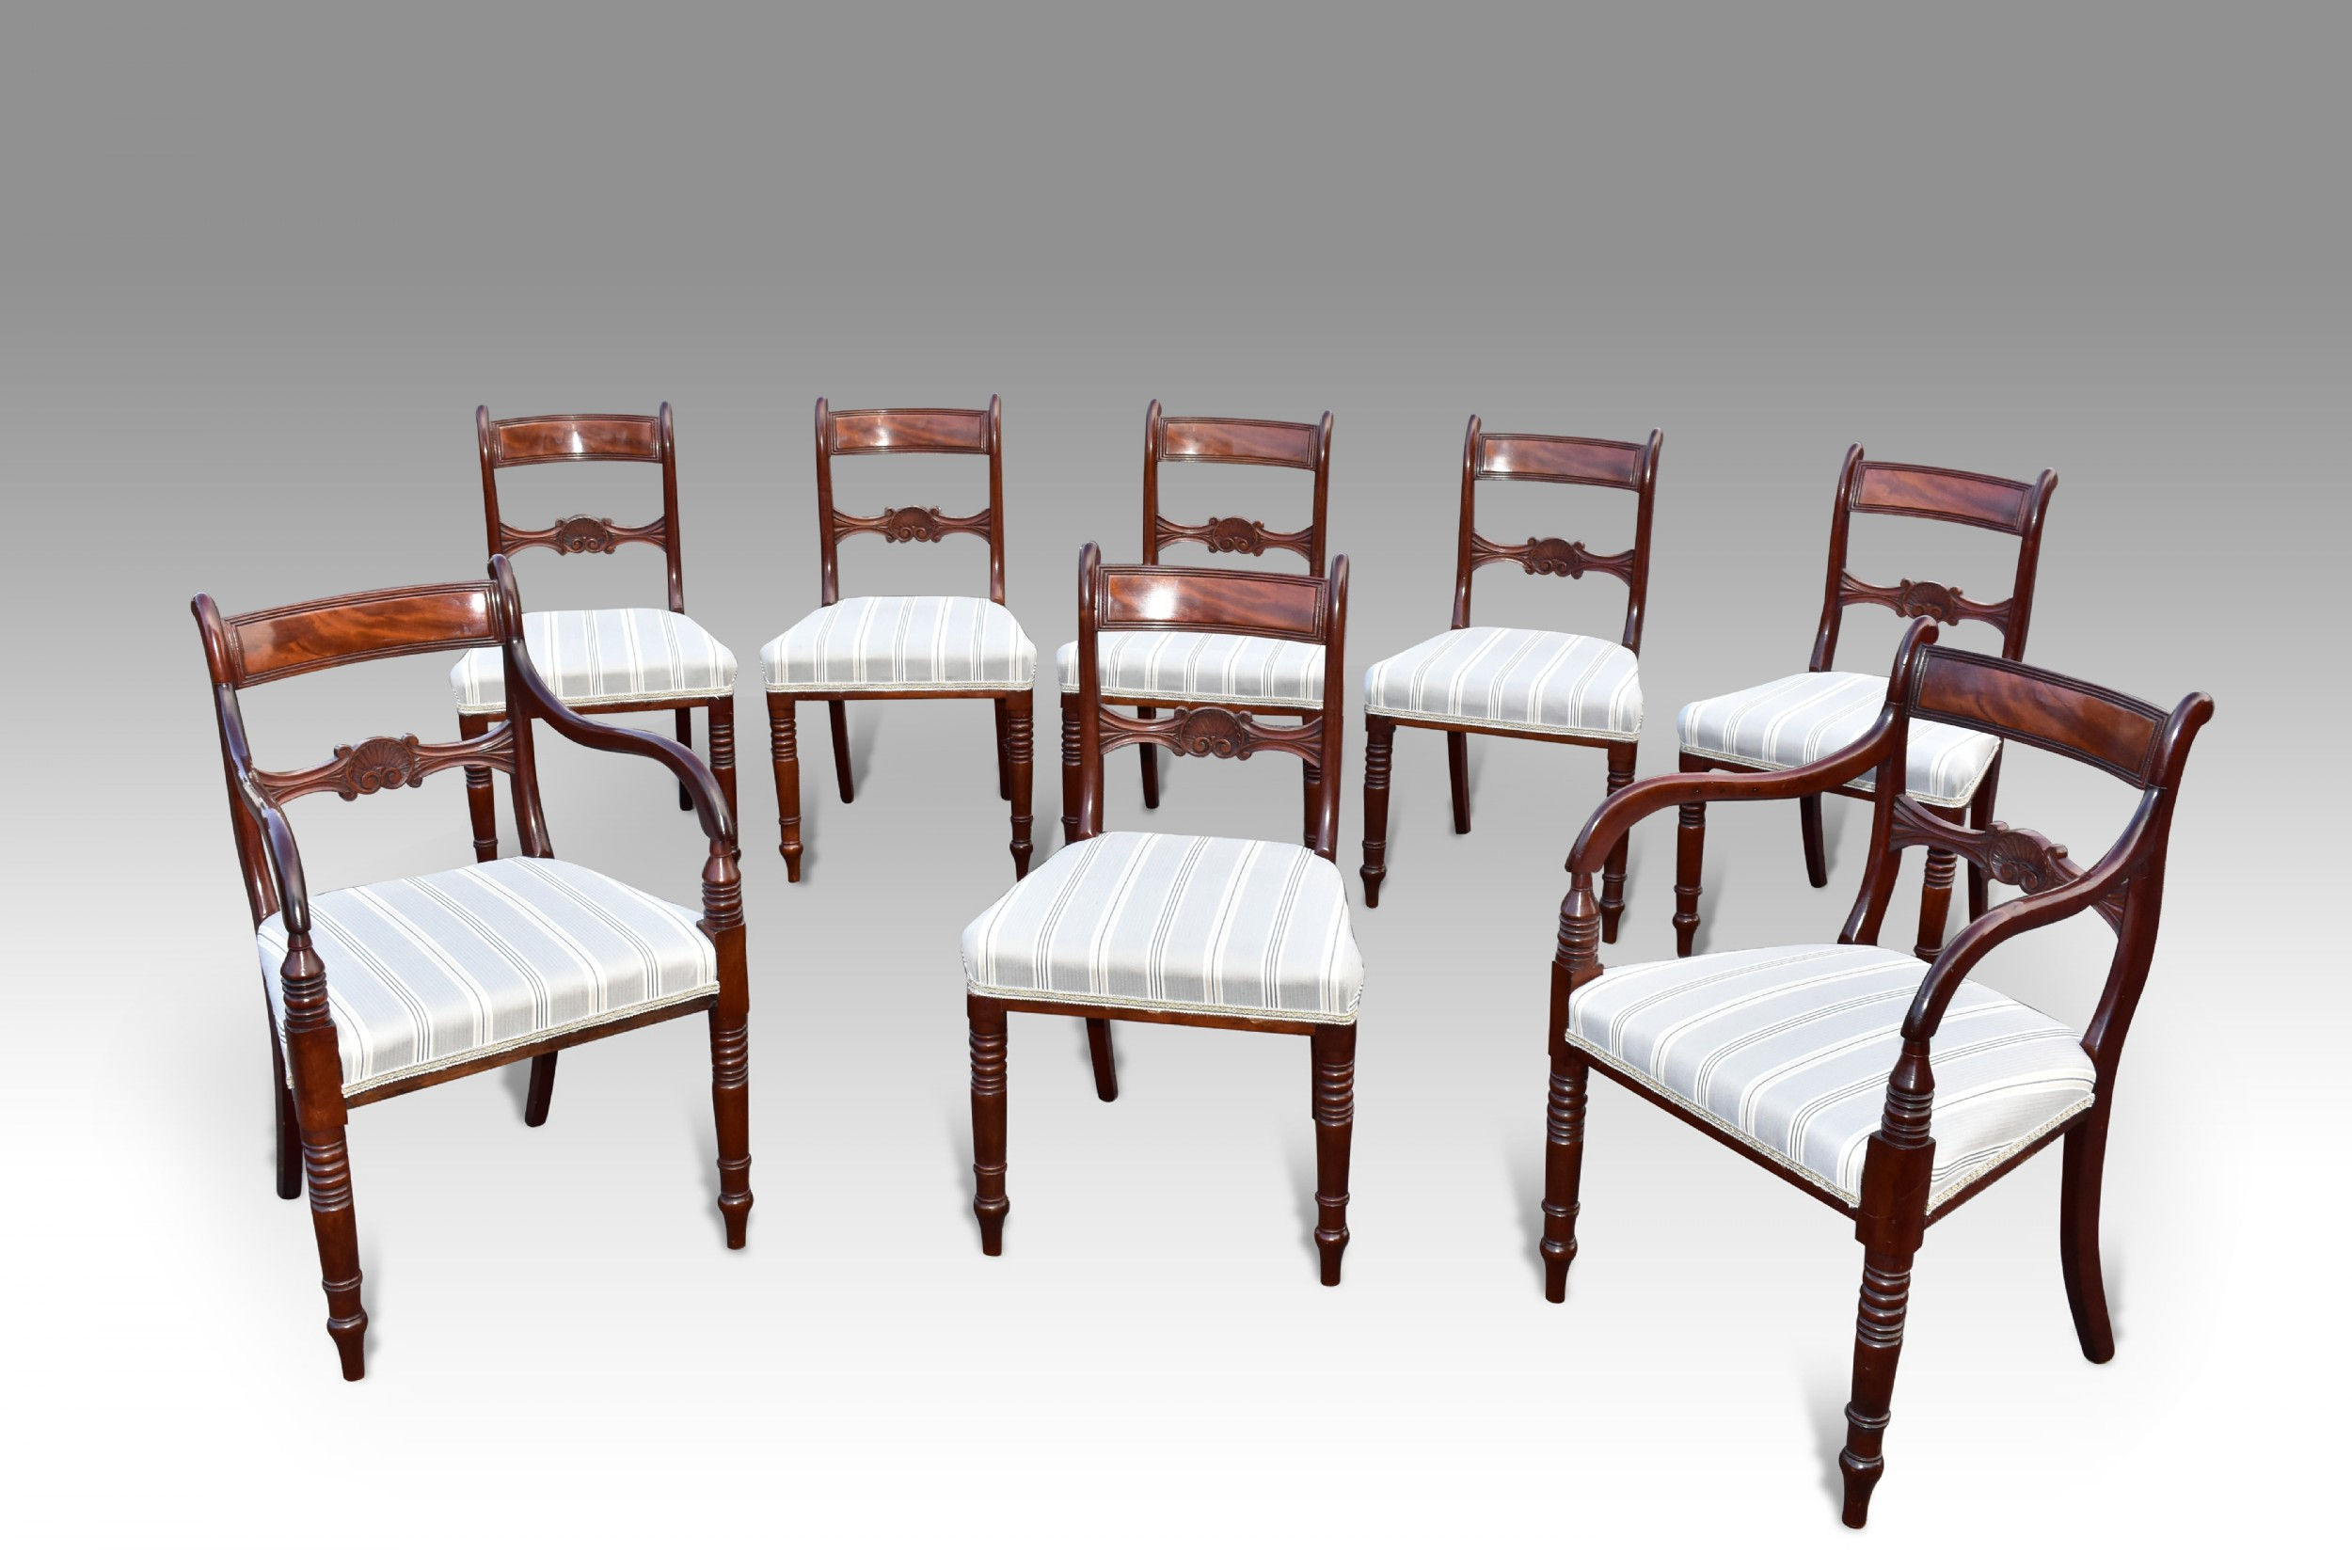 a fine set of 8 regency period dining chairs